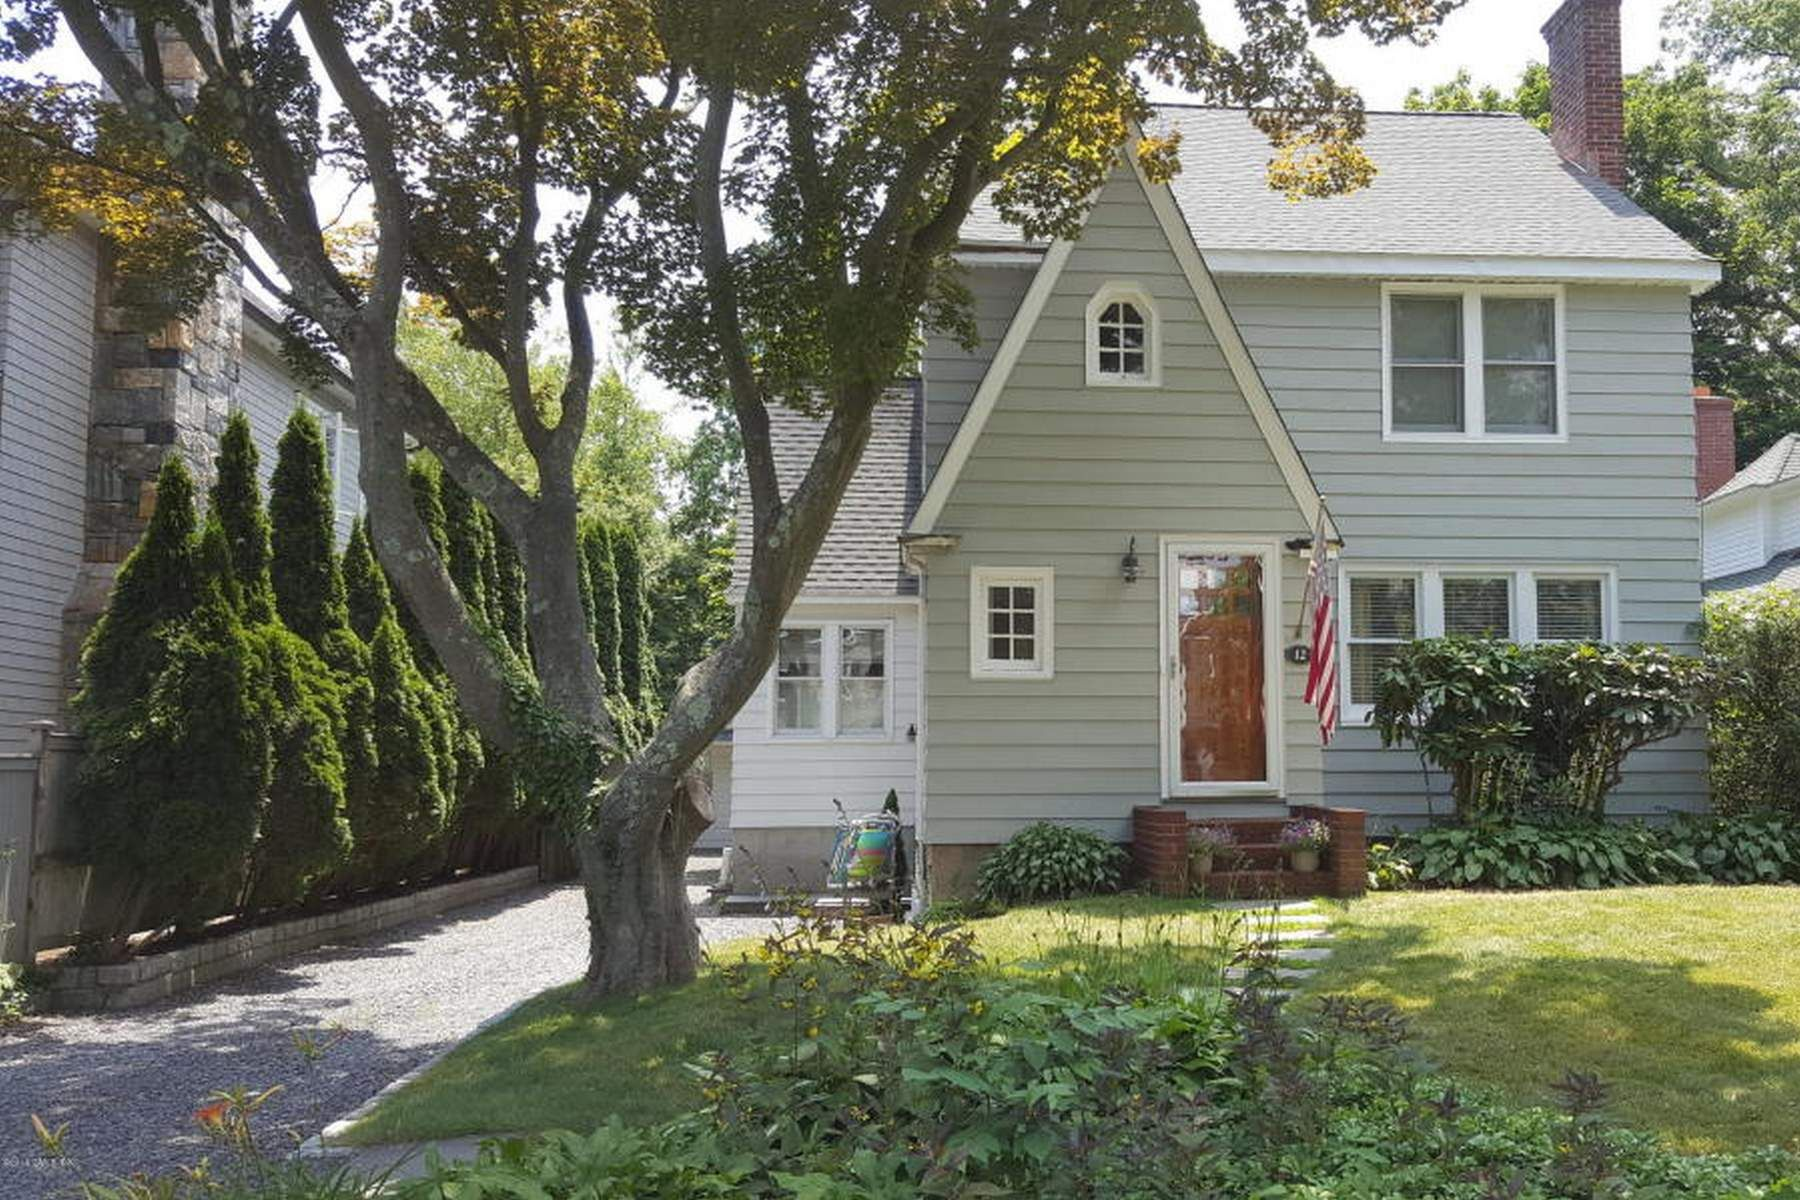 Single Family Home for Sale at 12 Irvine Road Old Greenwich, Connecticut, 06870 United States